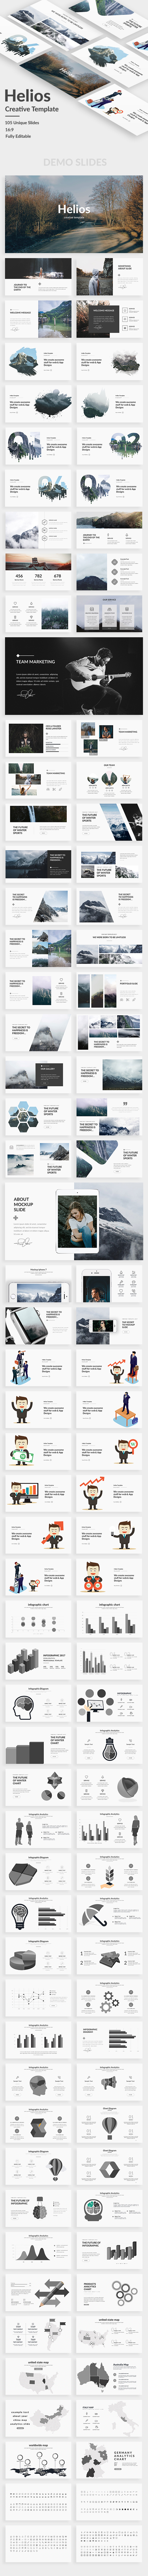 Helios Creative Powerpoint Template - Creative PowerPoint Templates